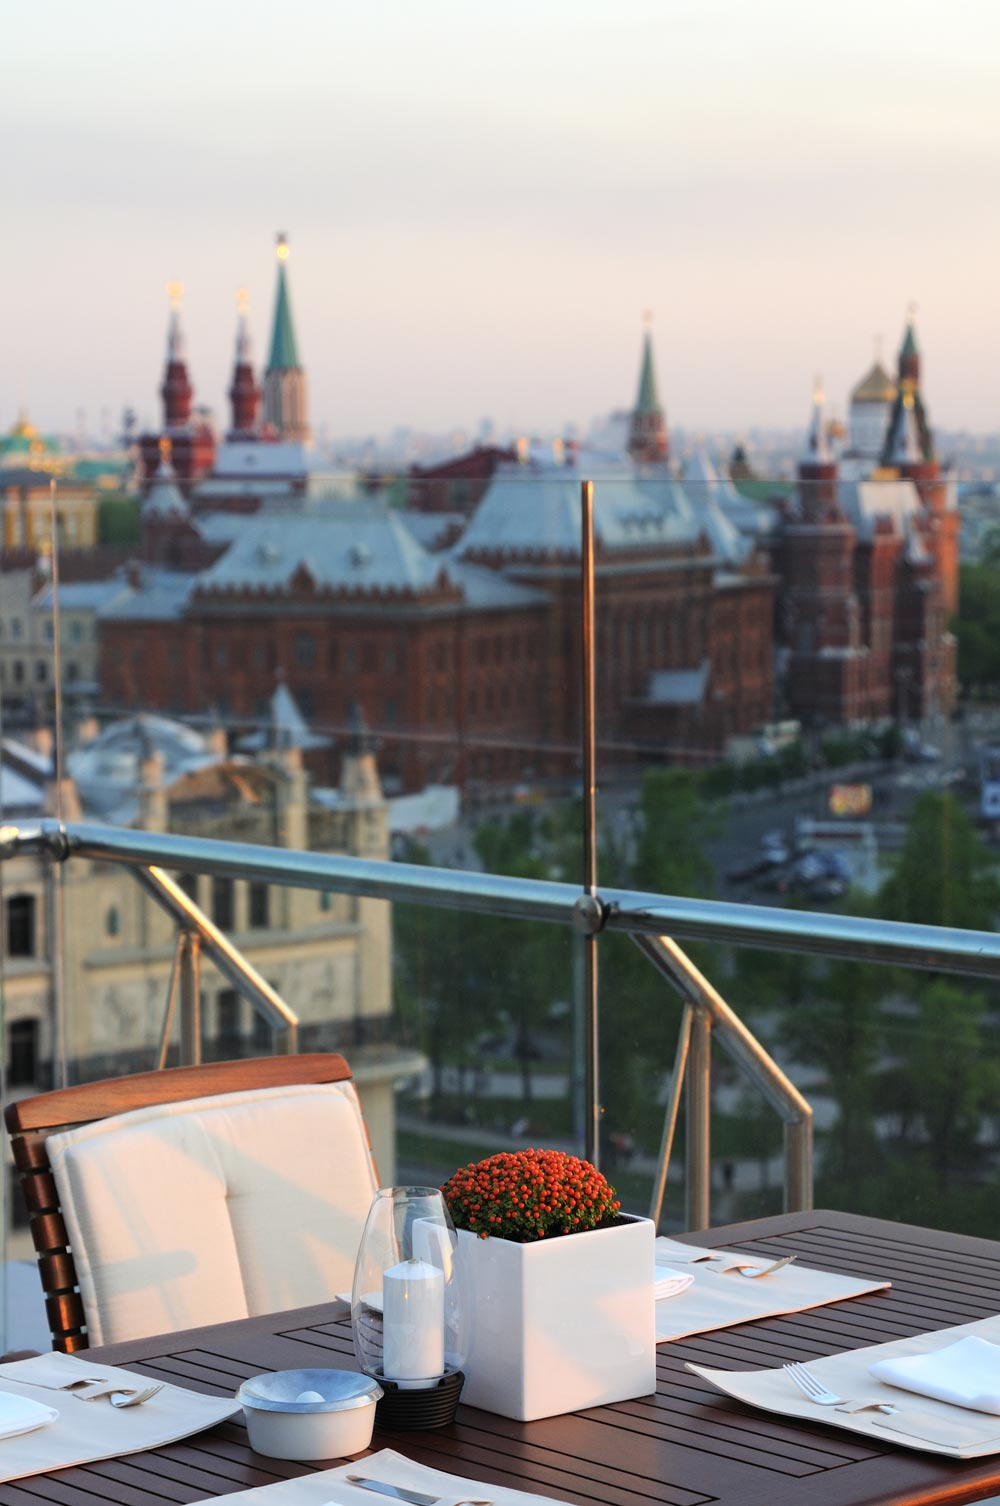 Conservatory Lounge Bar Terrace at Ararat Park Hyatt Moscow, Moscow, Russia